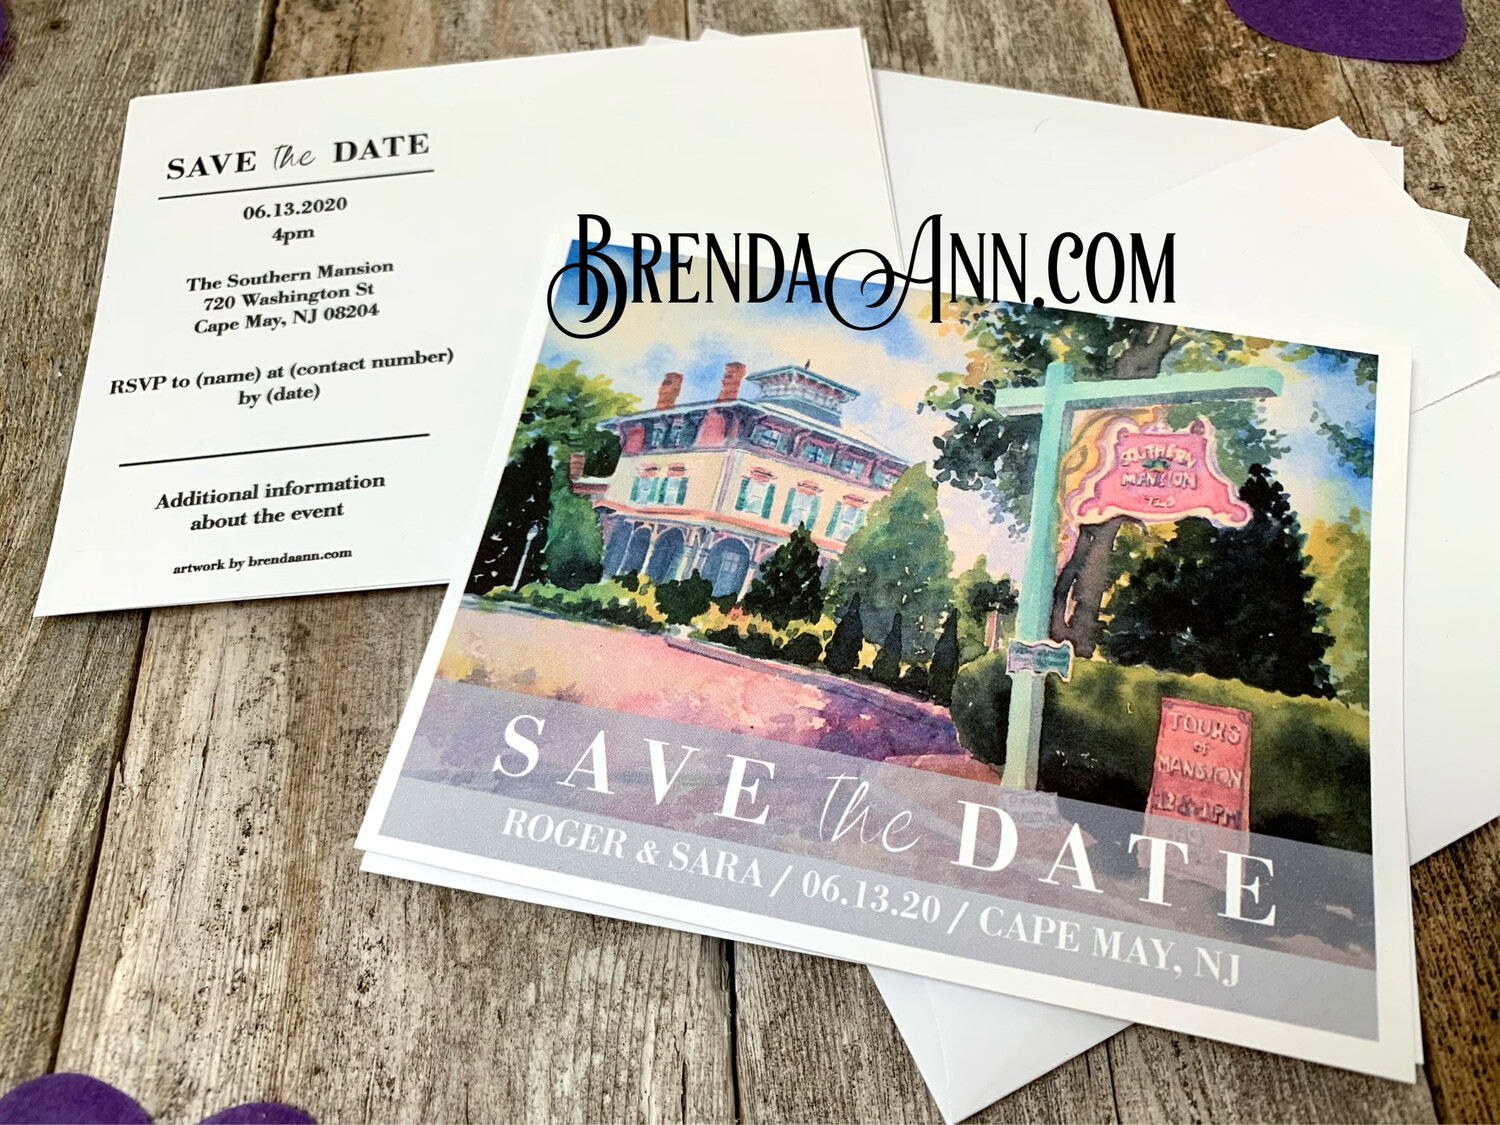 Wedding Save the Date Cards - Southern Mansion in Cape May NJ - Watercolor by Brenda Ann